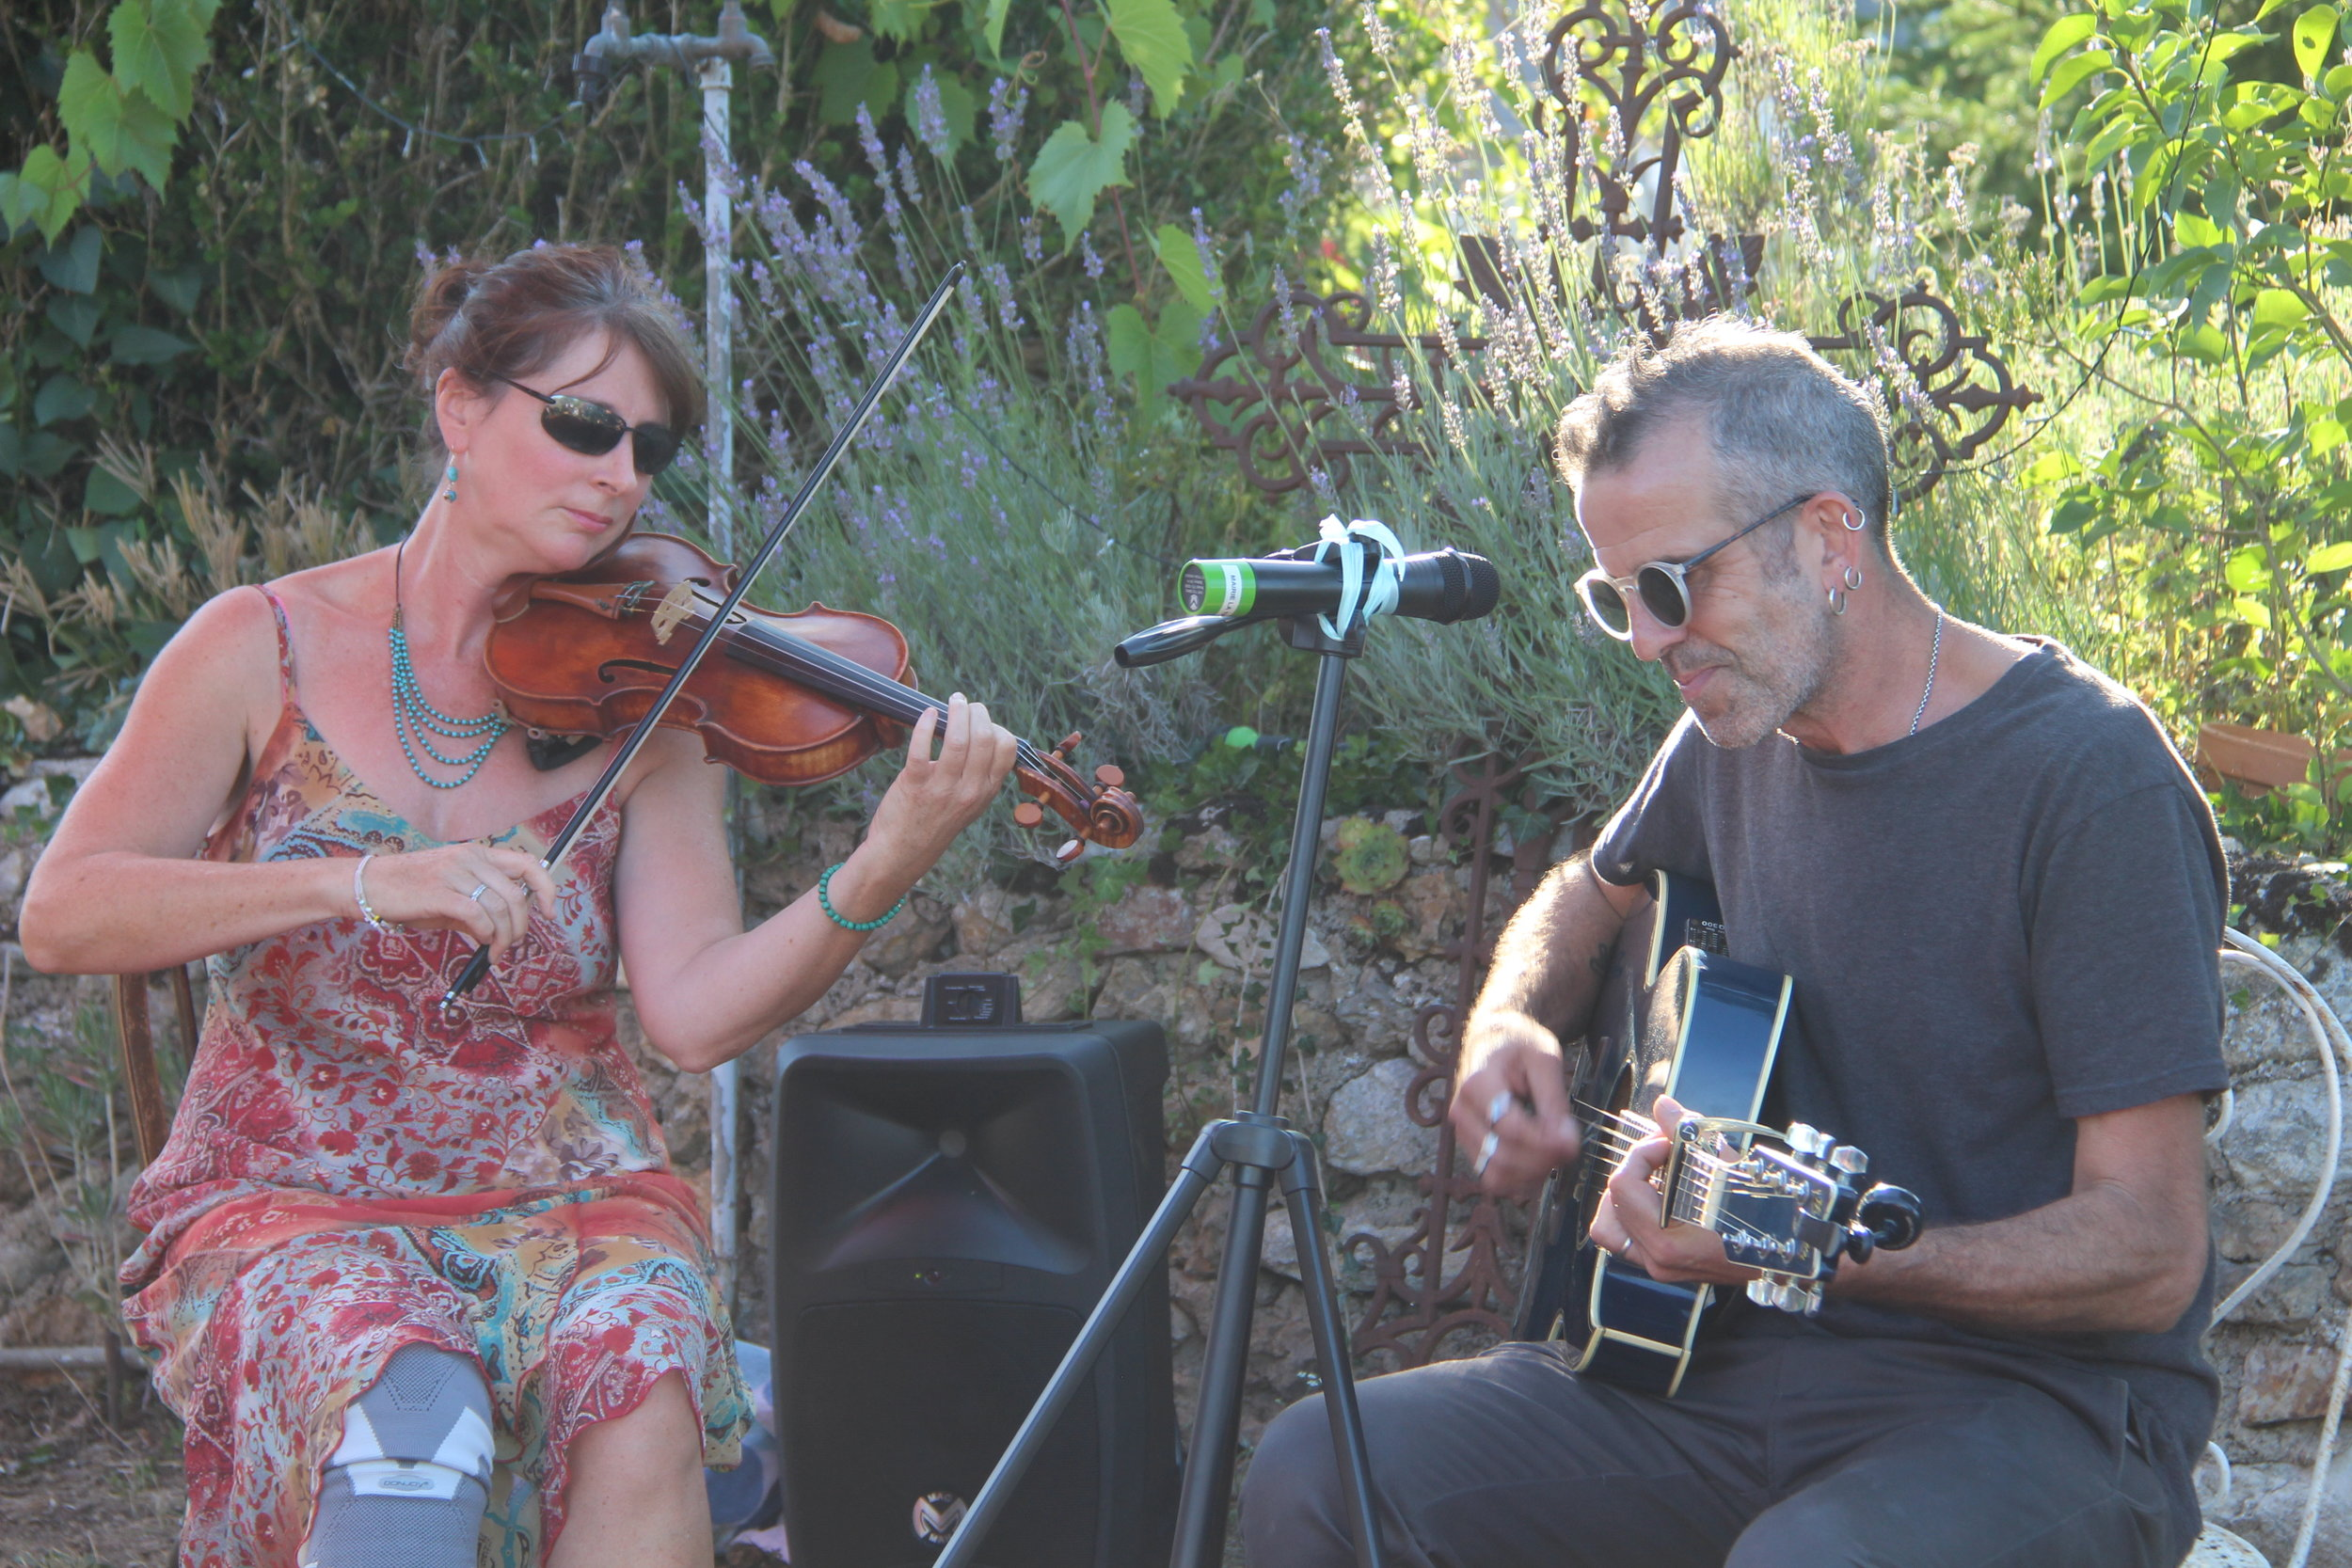 Lucy Perkins and Jonas Read in an improvised jam session in the gardens of the ATELIER MELUSINE 19.07.19